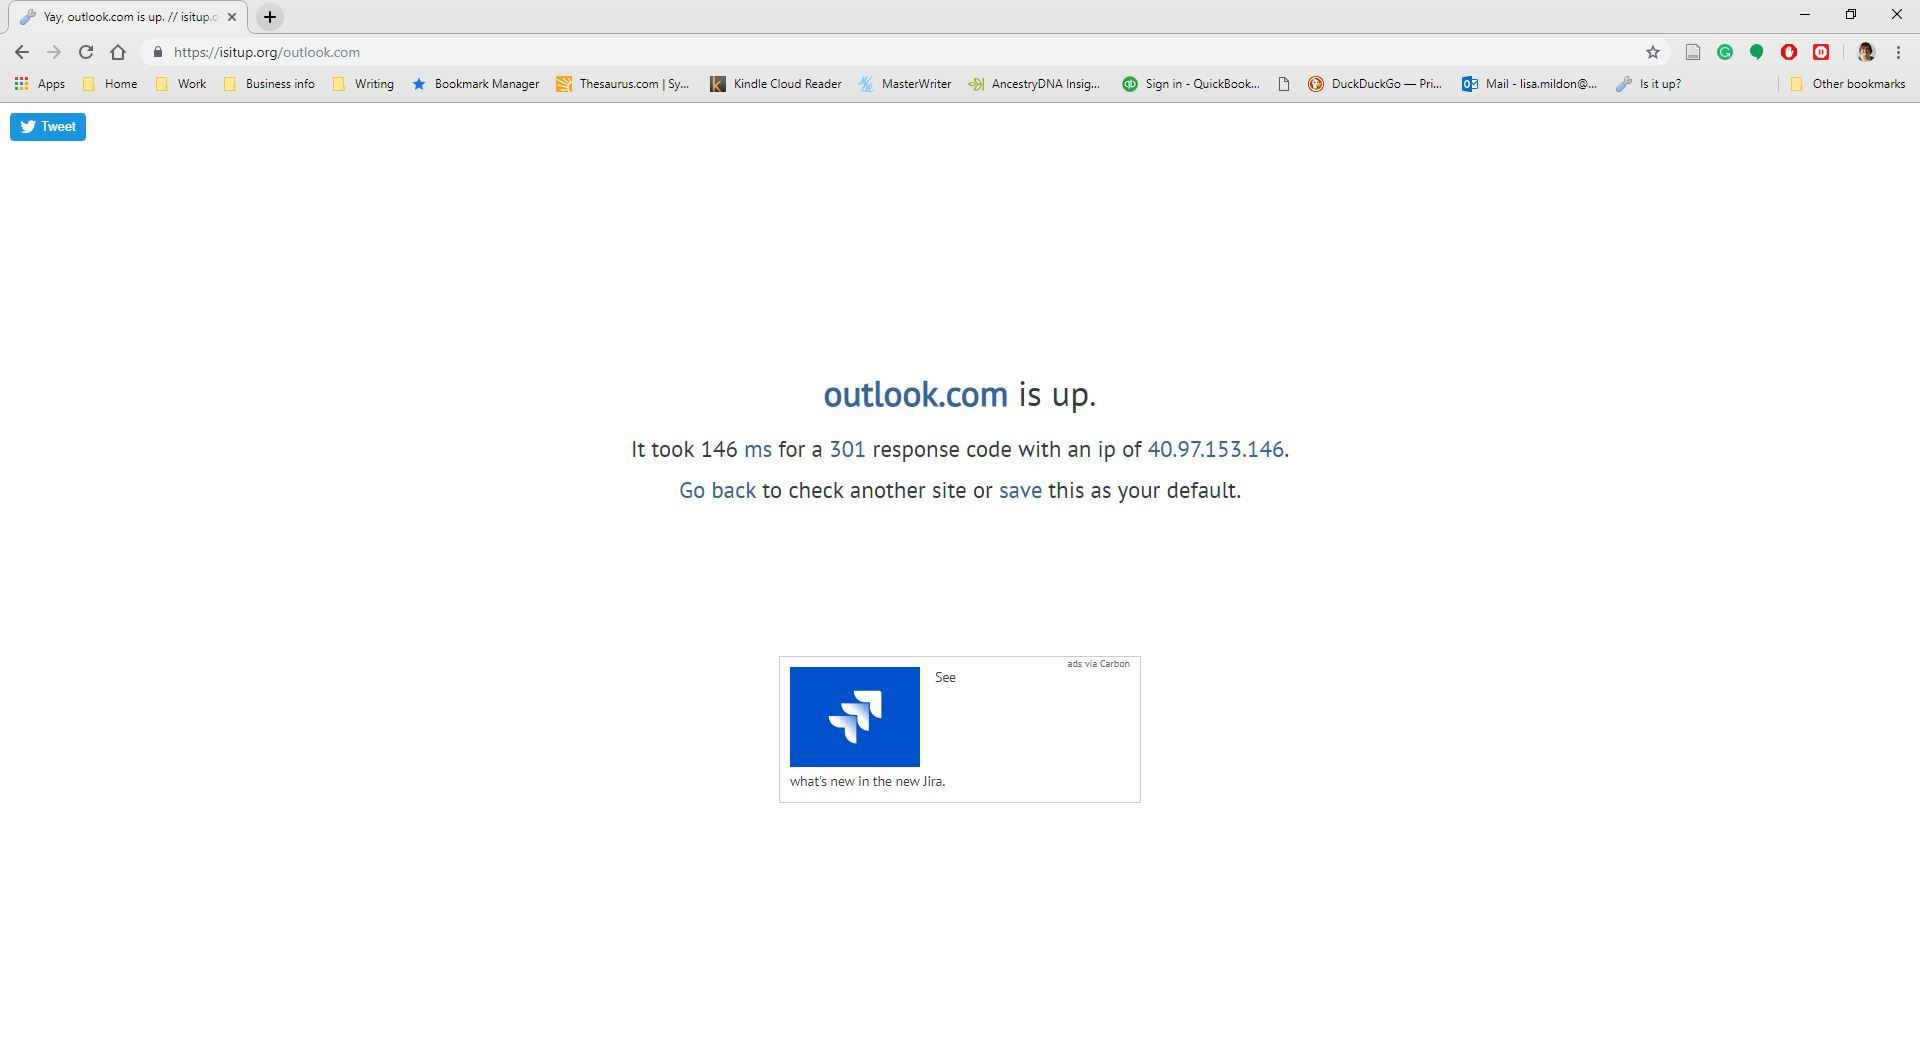 A website, Is is up, displaying Outlook.com's website status.